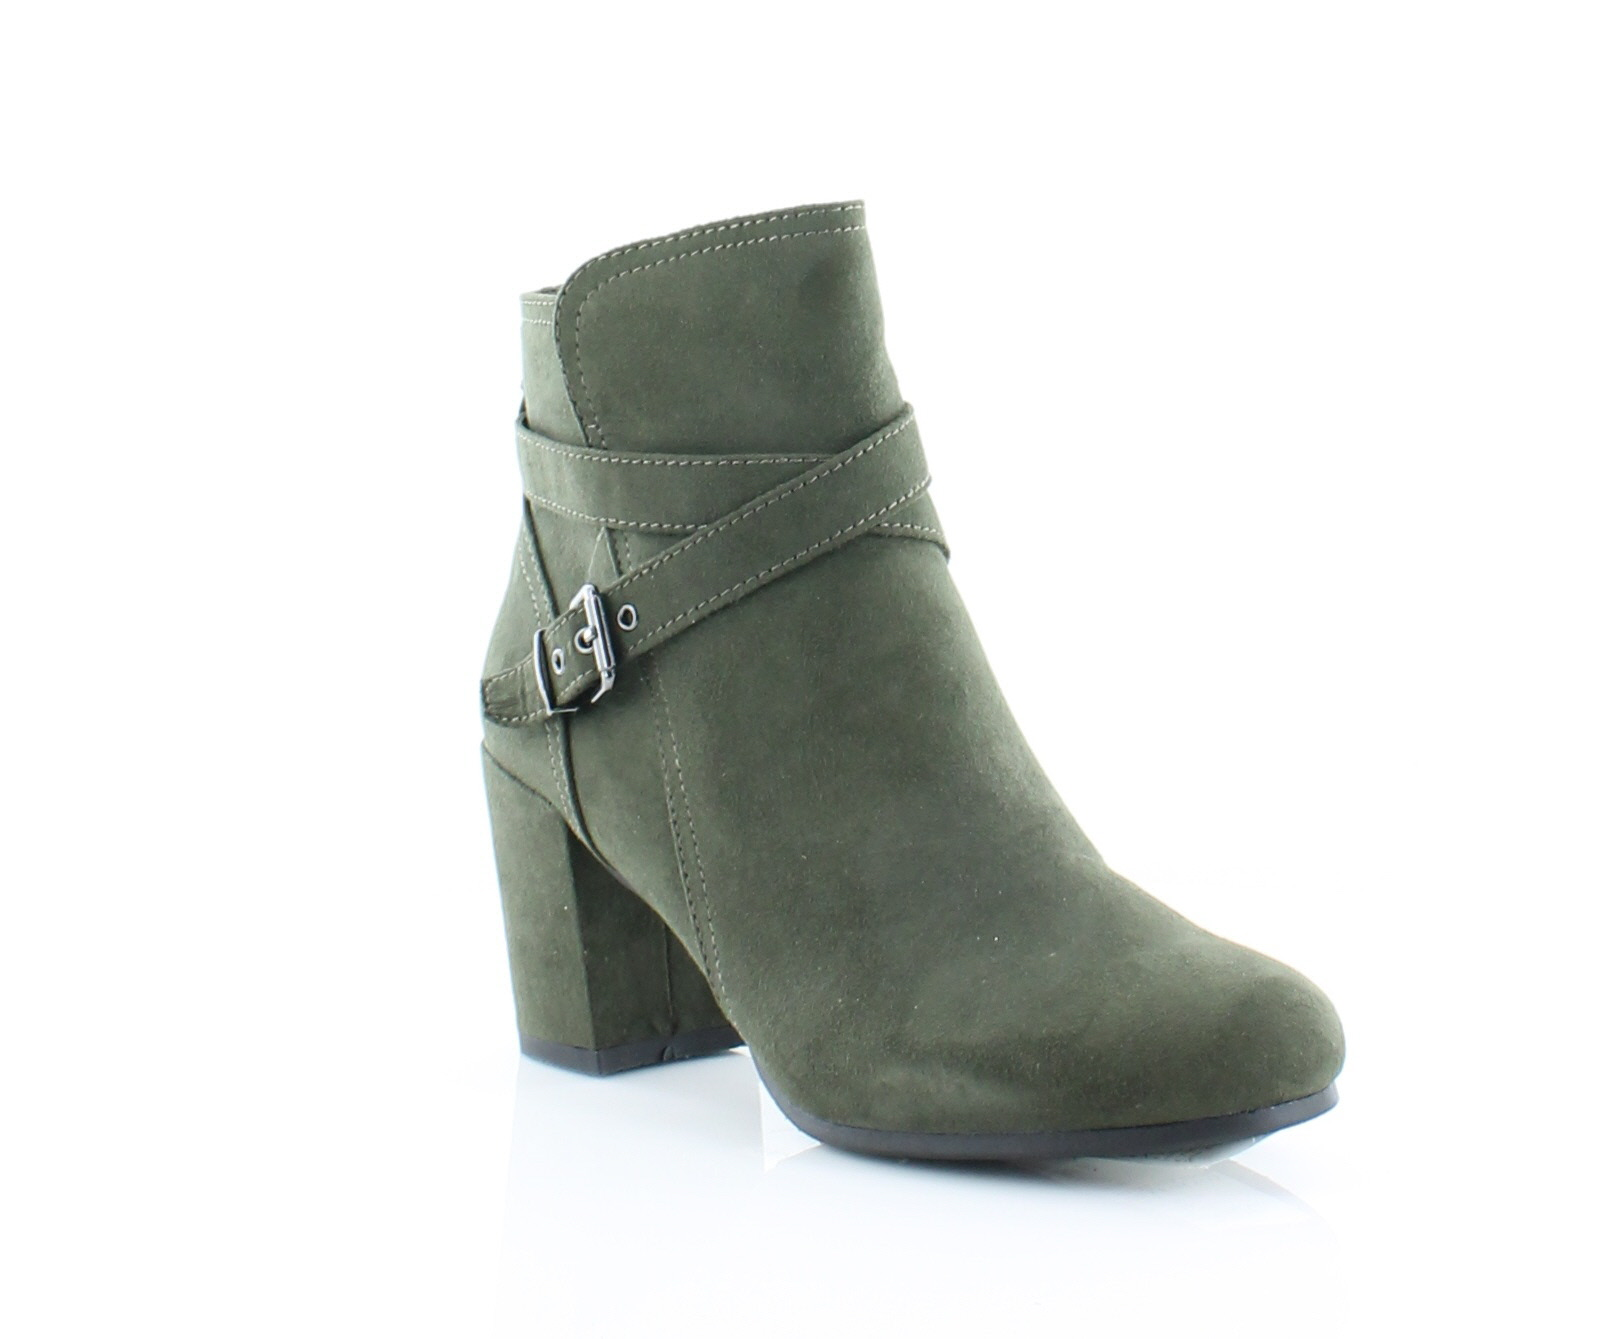 Madden Girl Righton Women's Boots Olive Size 6.5 M